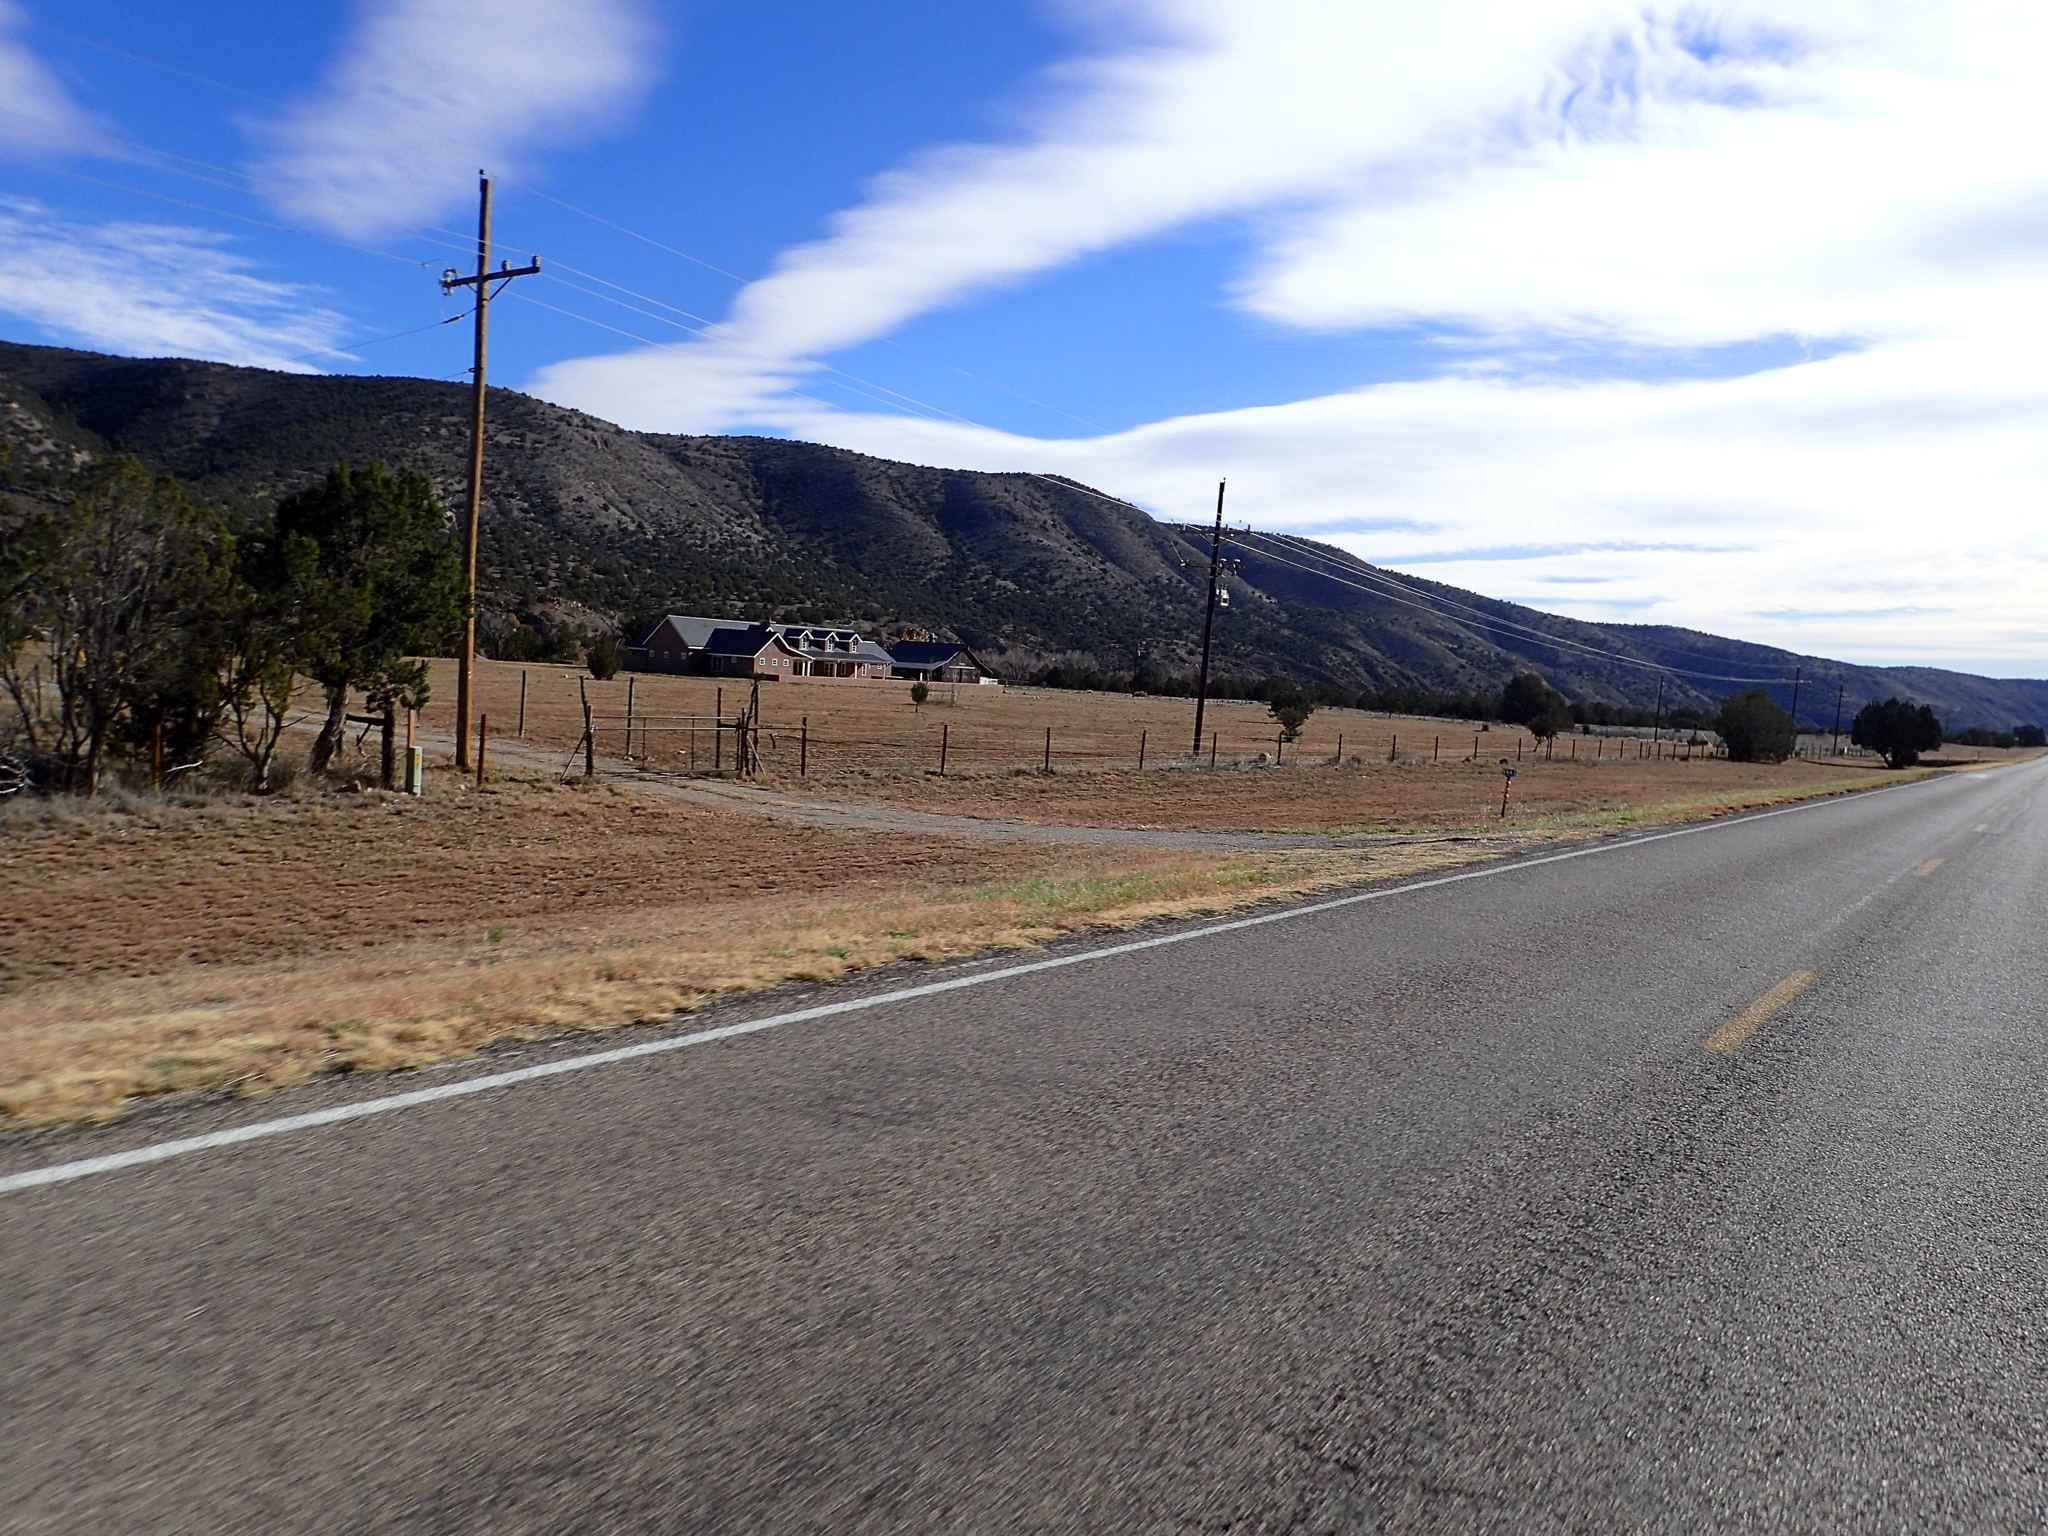 Large ranch farm under the hills